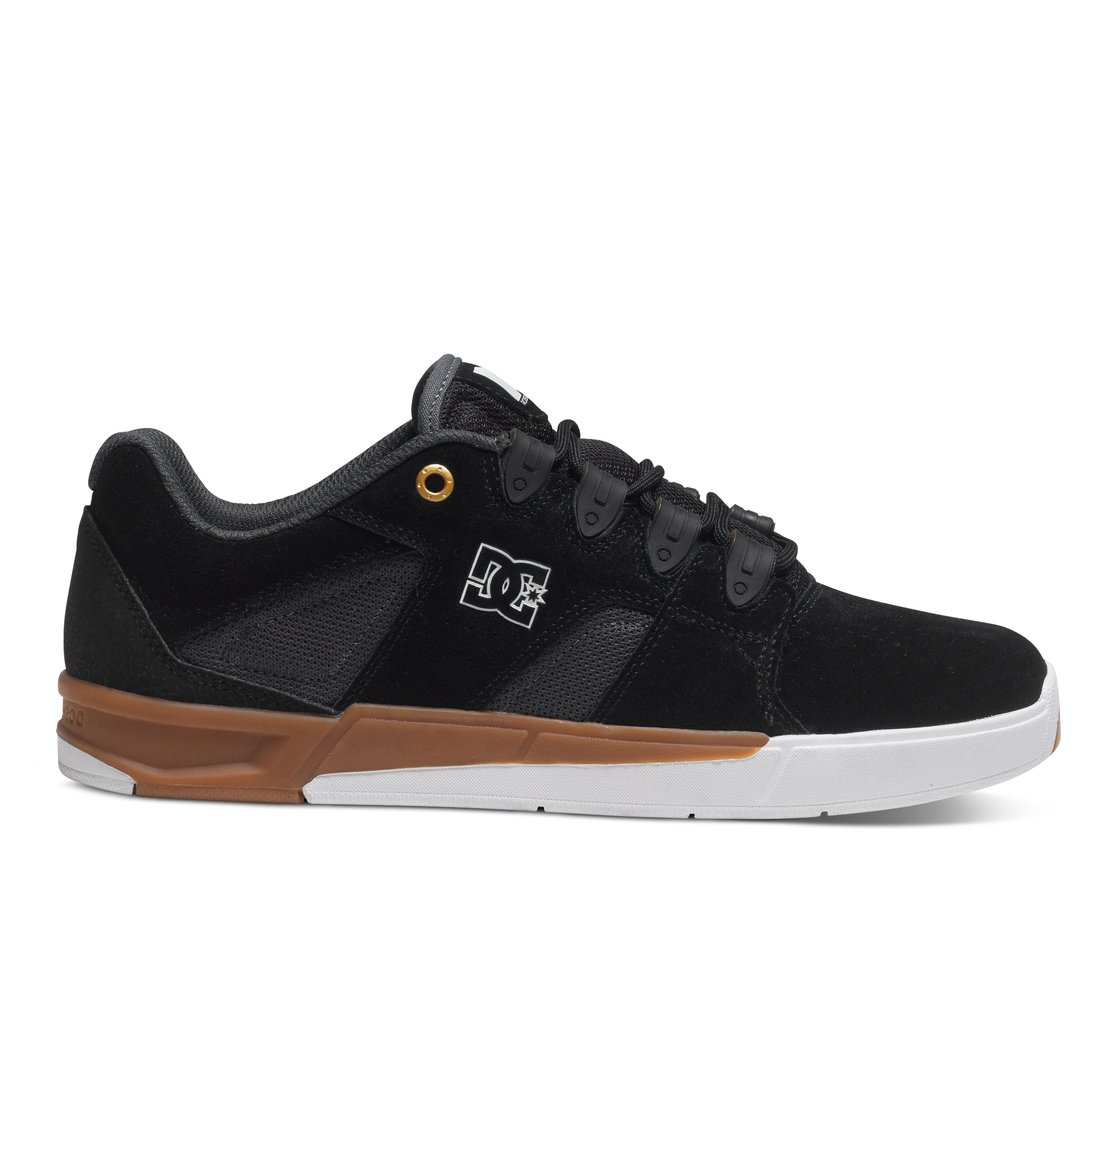 dc shoes maddo chaussures basses pour homme adys100226. Black Bedroom Furniture Sets. Home Design Ideas